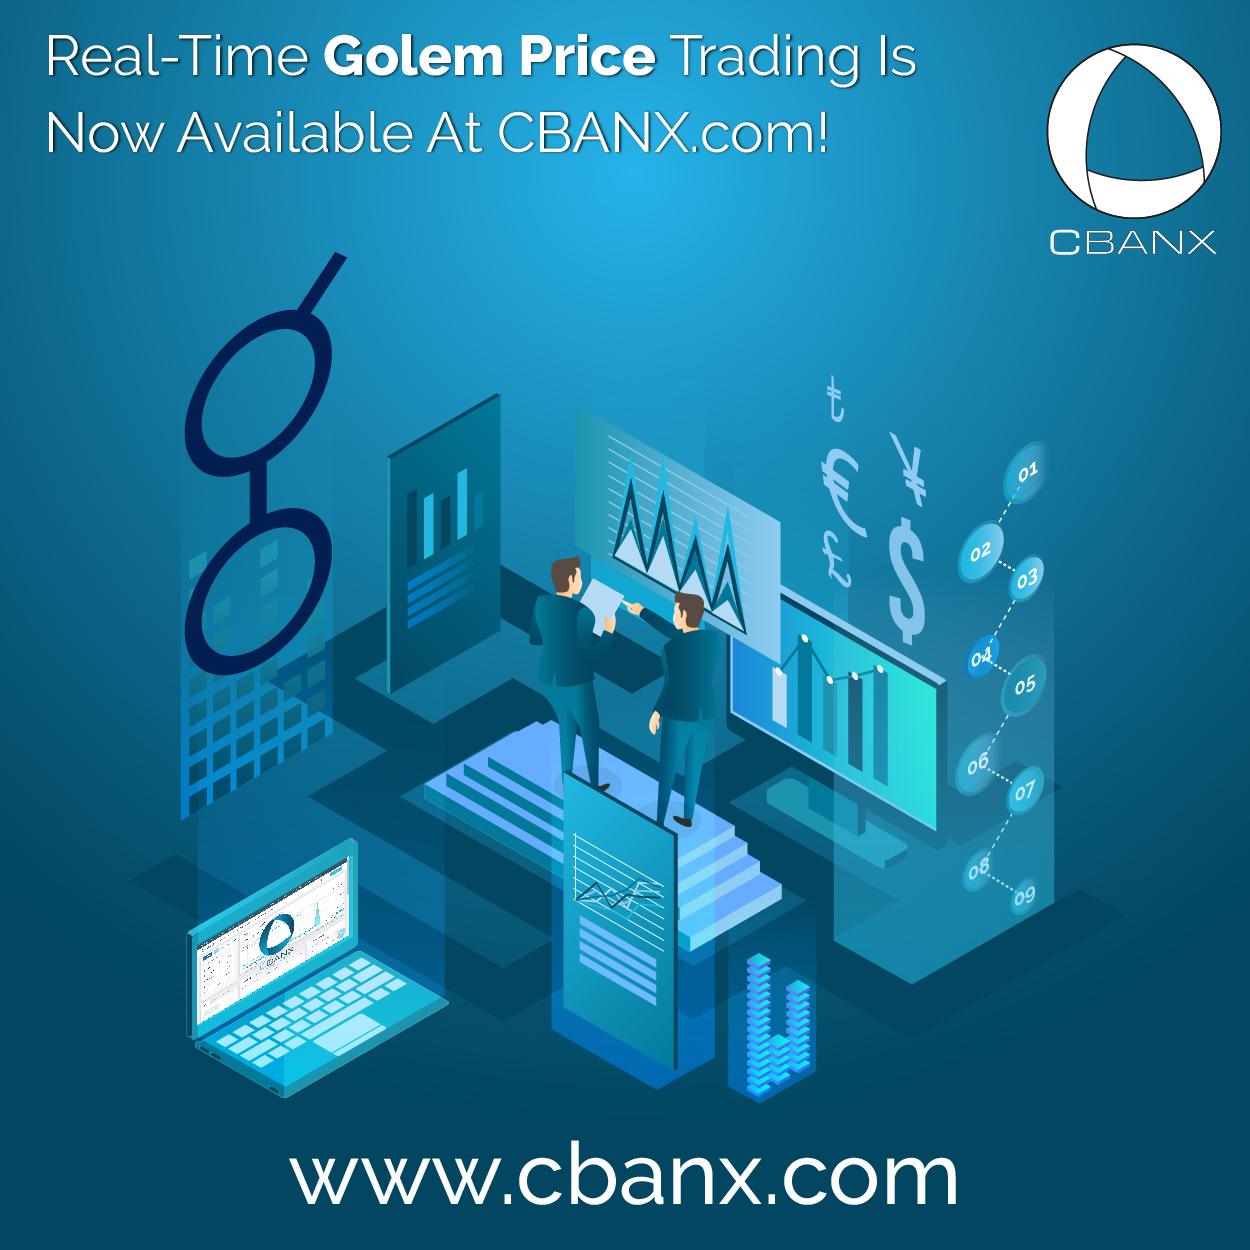 Real-Time Golem Price Trading Is Now Available At CBANX.com!